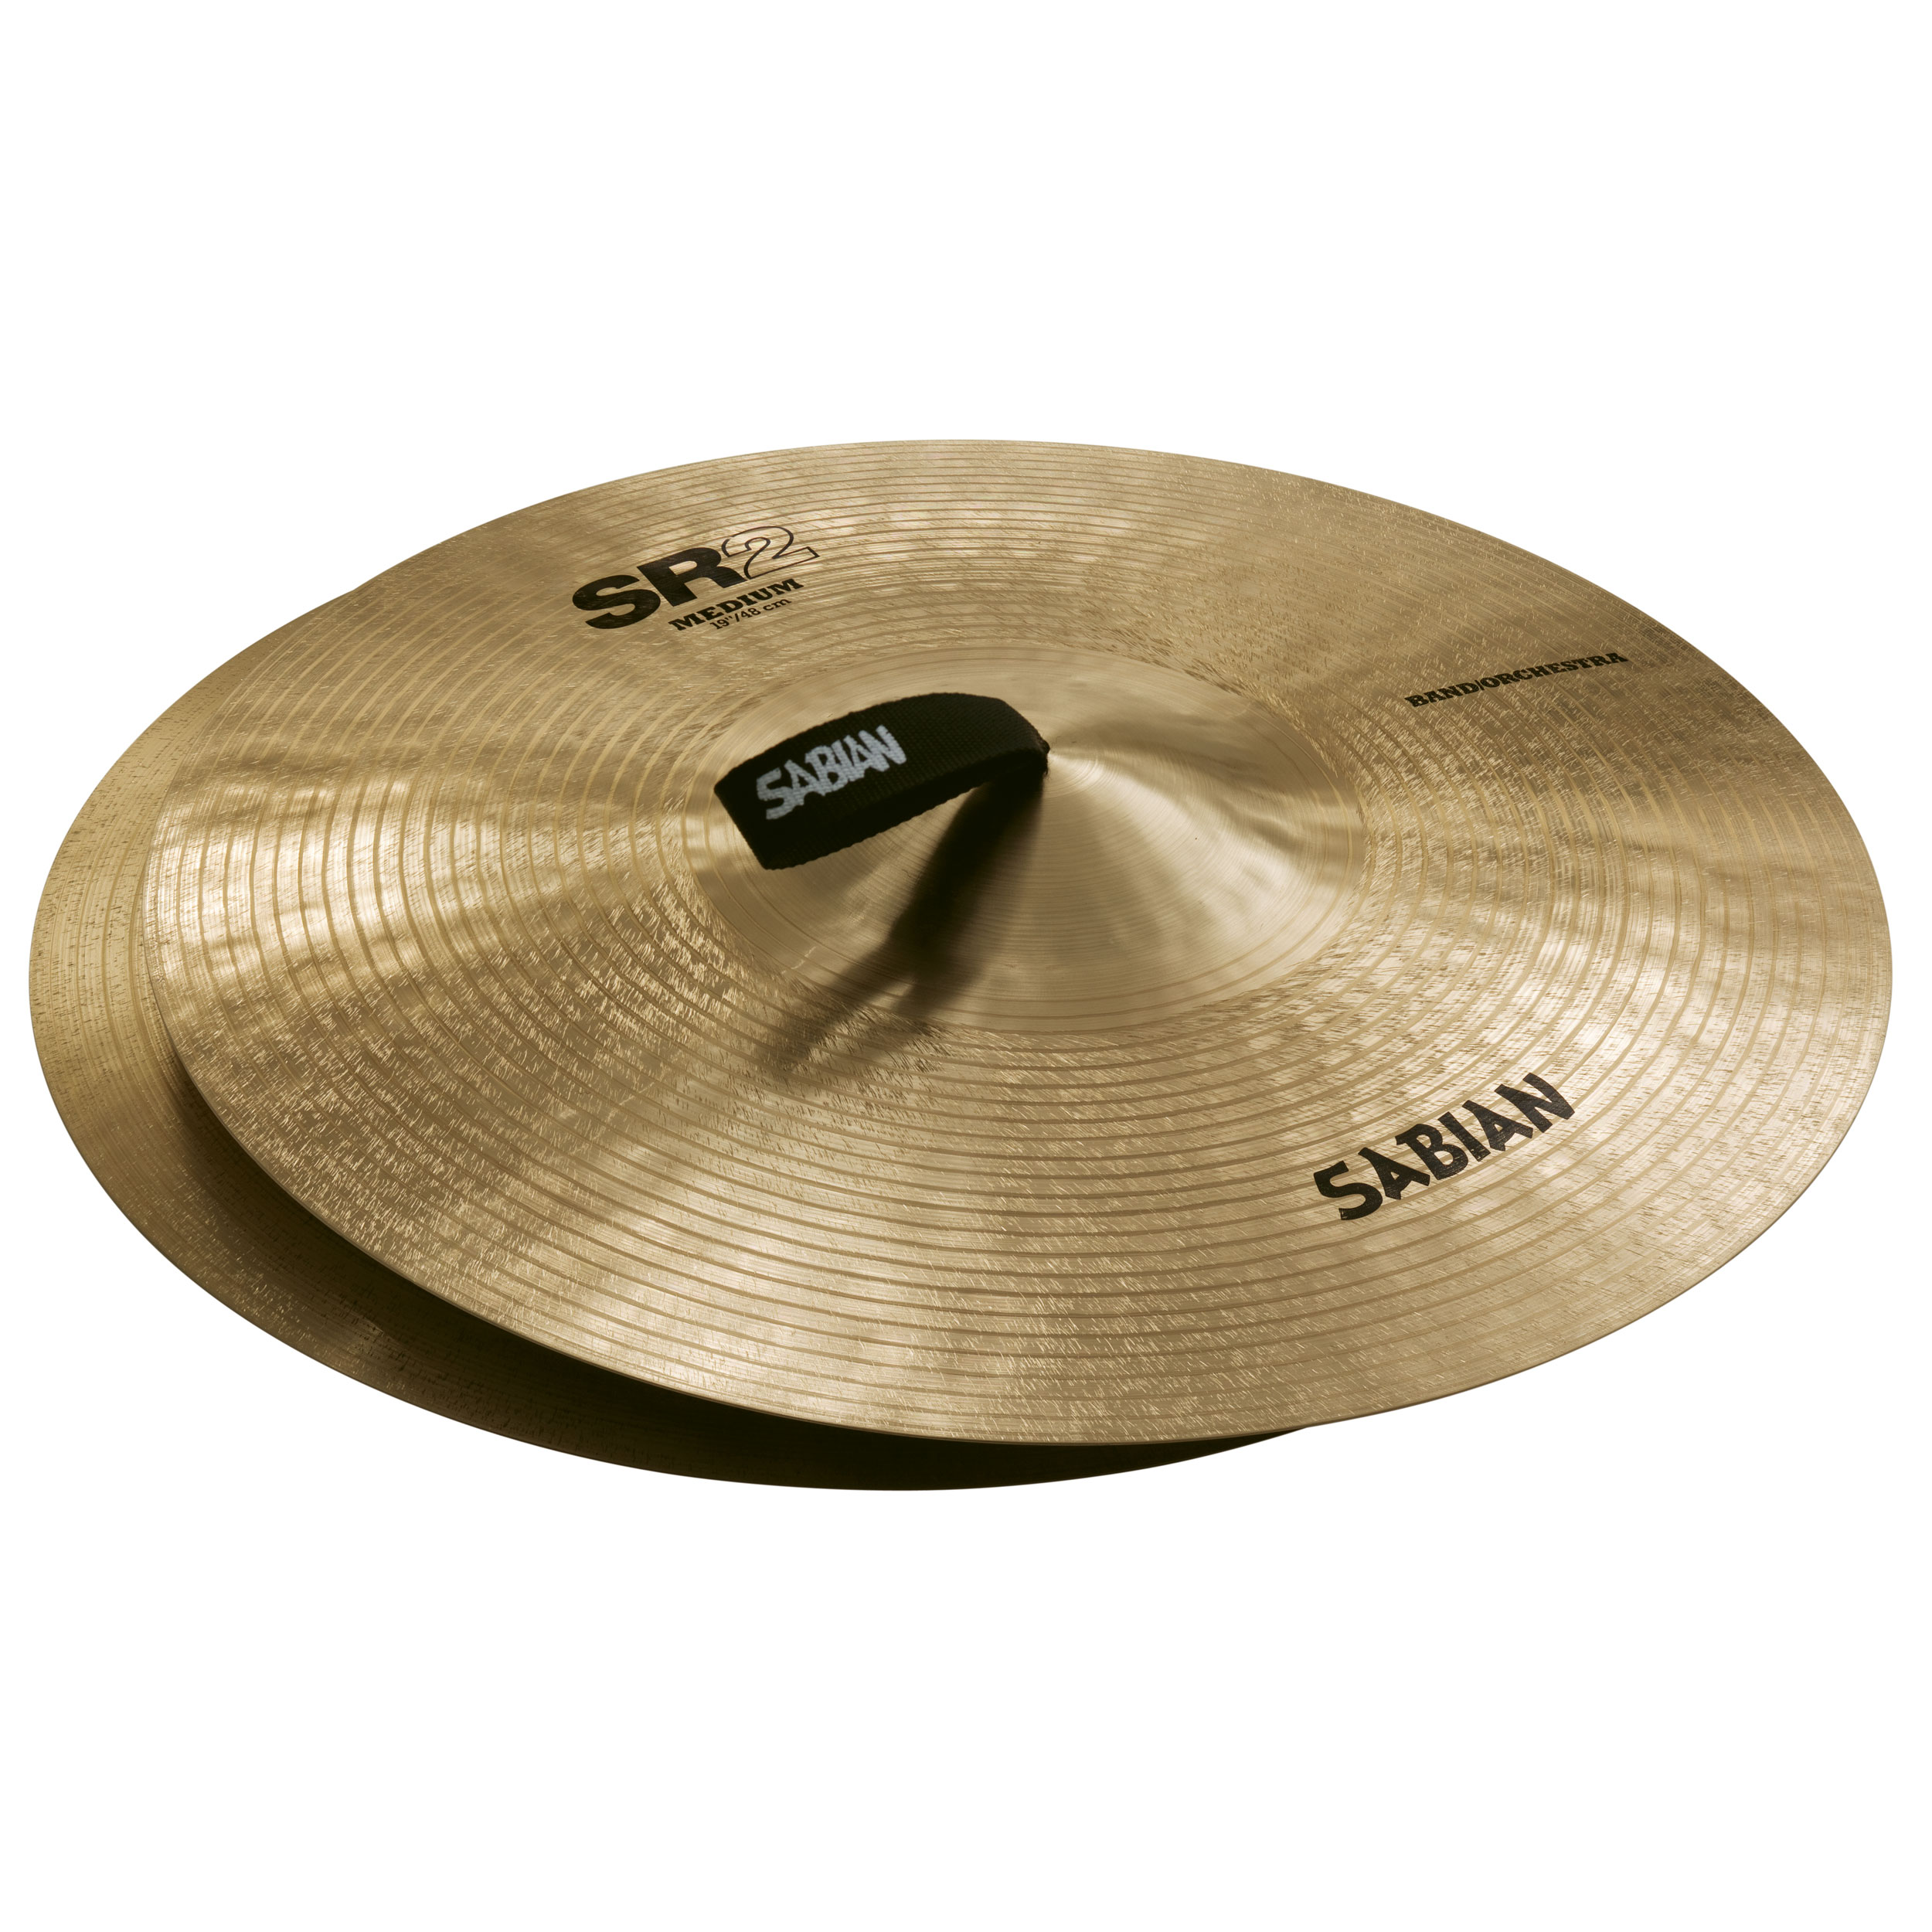 "Sabian 19"" SR2 Band & Orchestra Medium Crash Cymbal Pair"